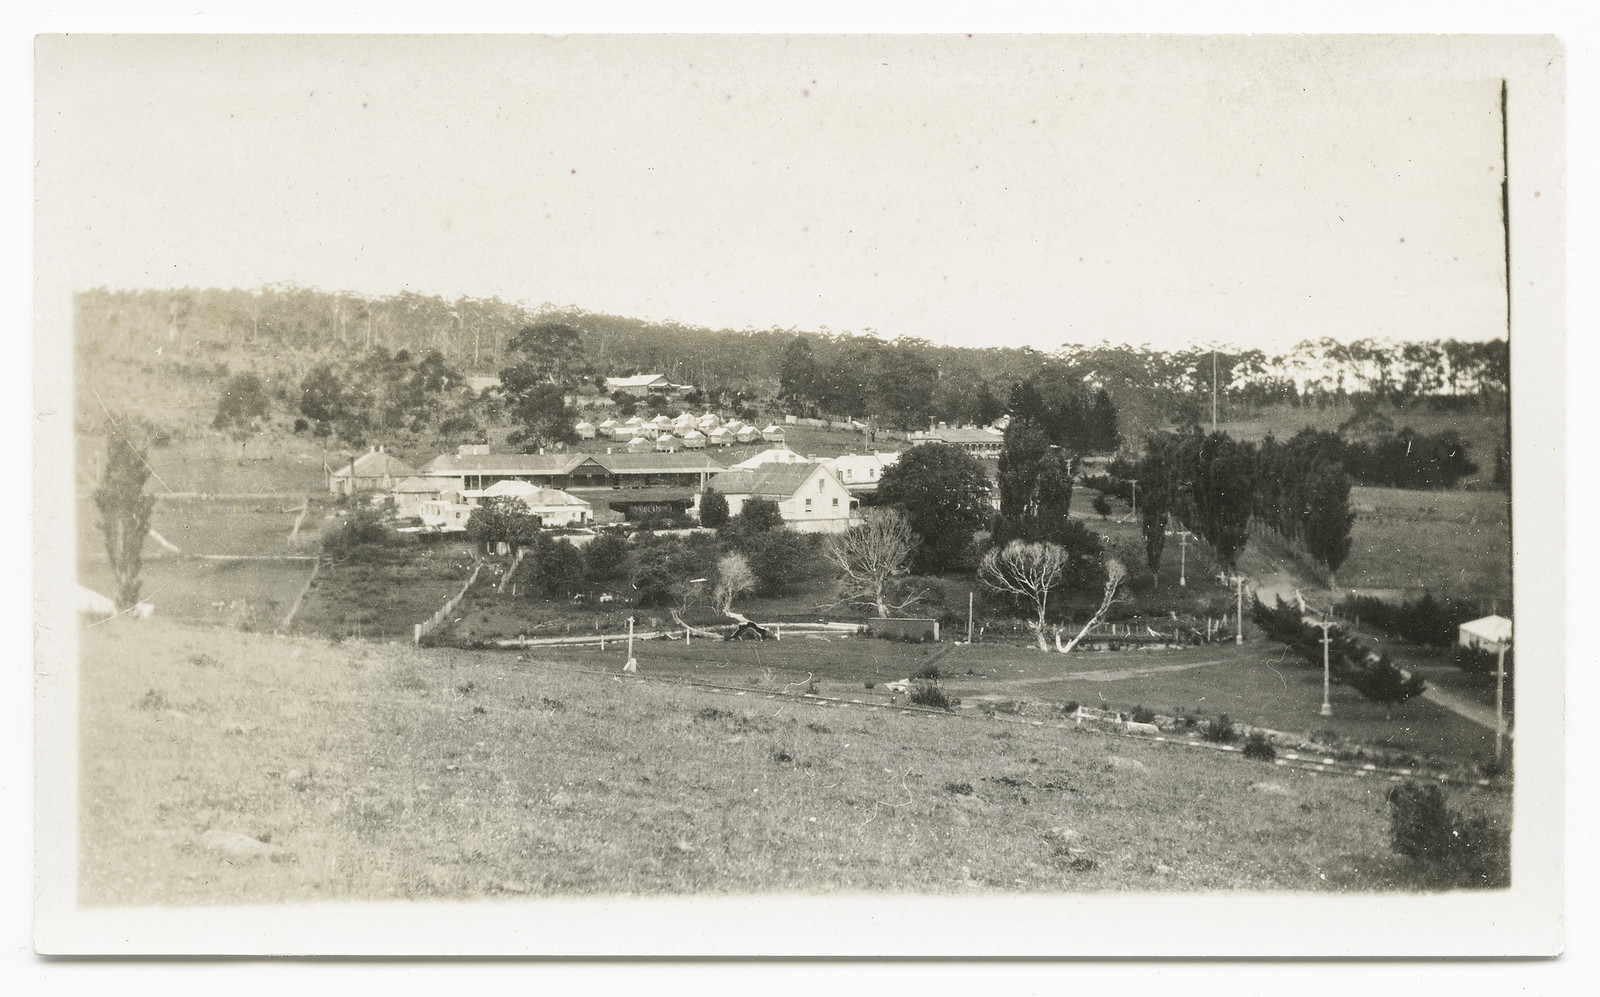 Maria Island - settlement of Darlington - view from hill (c1924)